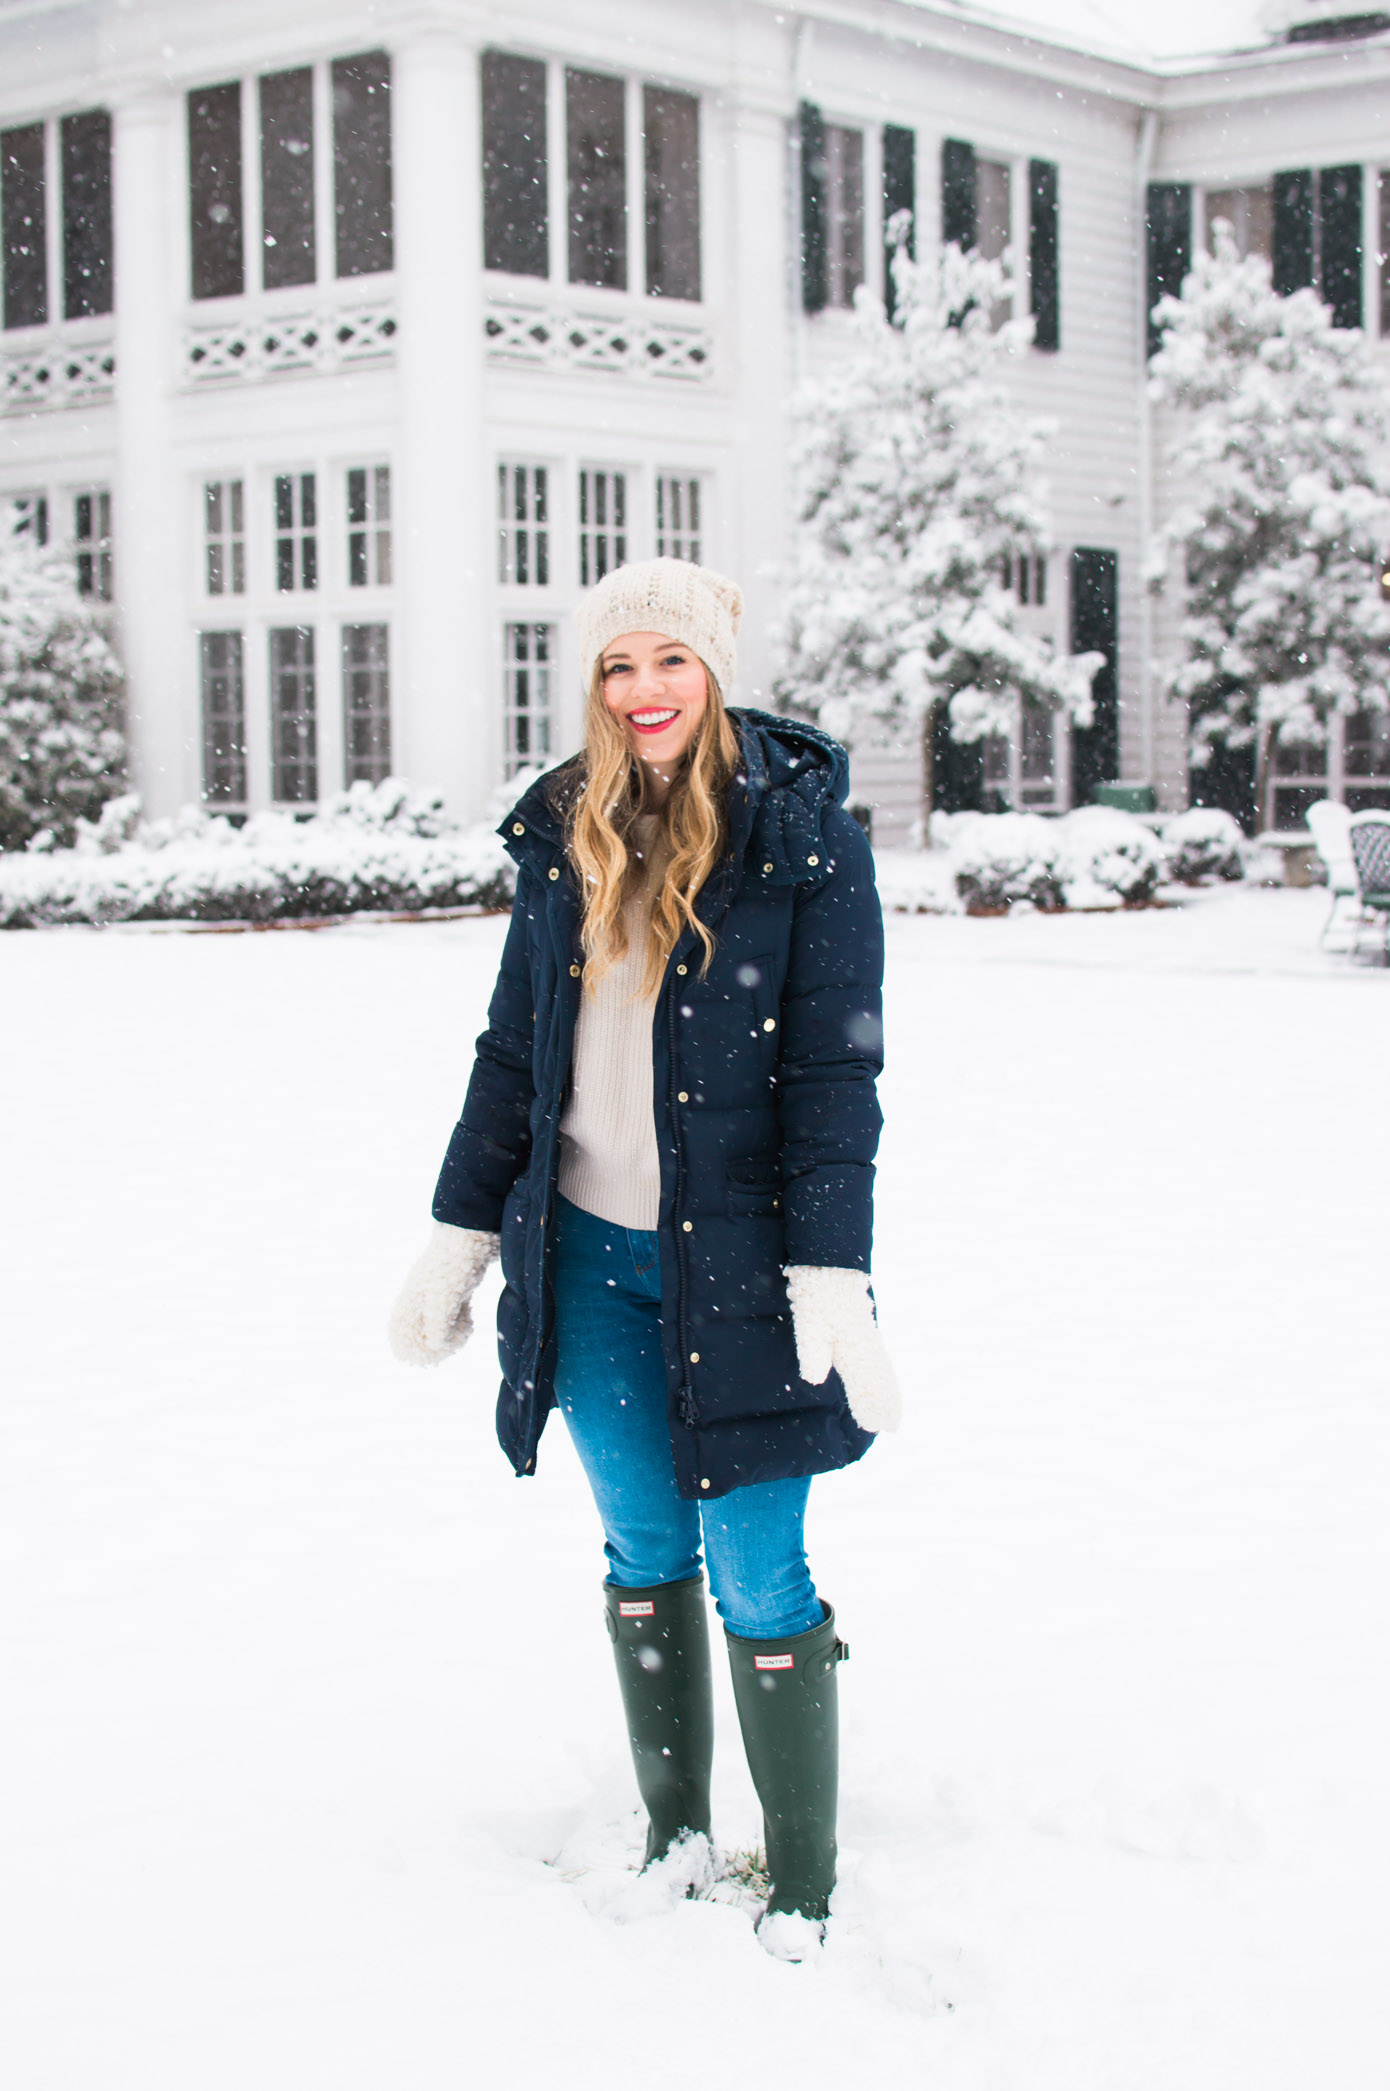 Charlotte Snow Day | Snow Day Outfit Inspo | Louella Reese Life & Style Blog